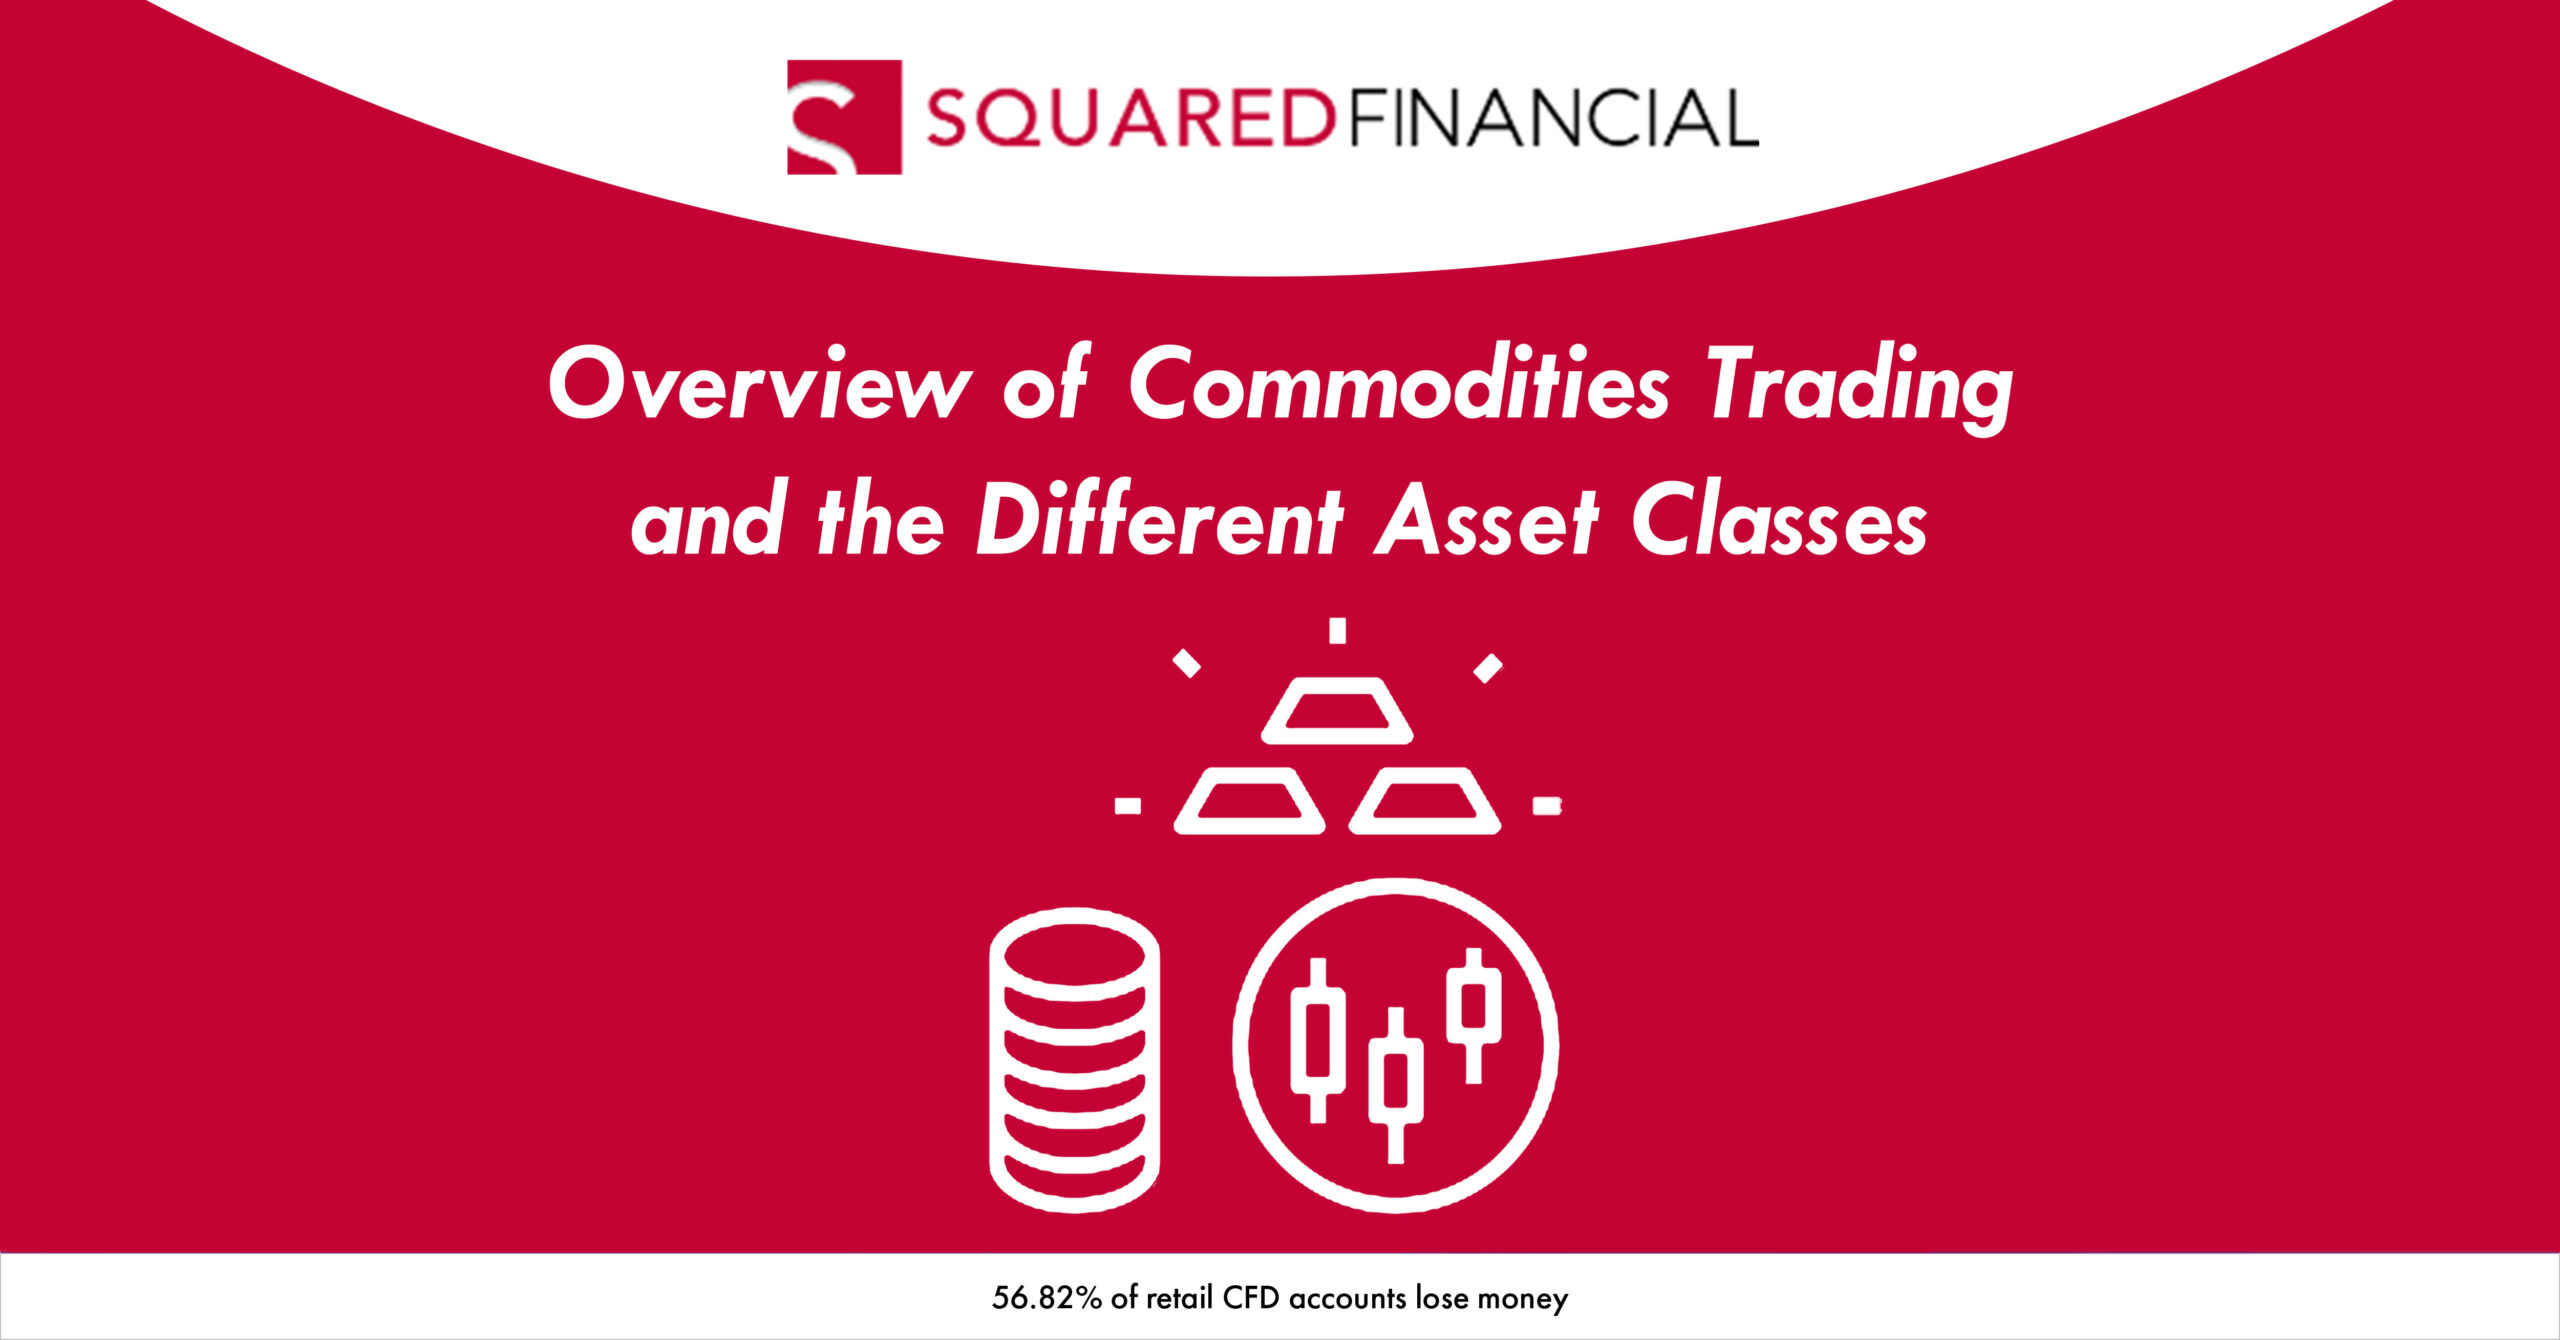 Overview of Commodities Trading and the Different Asset Classes